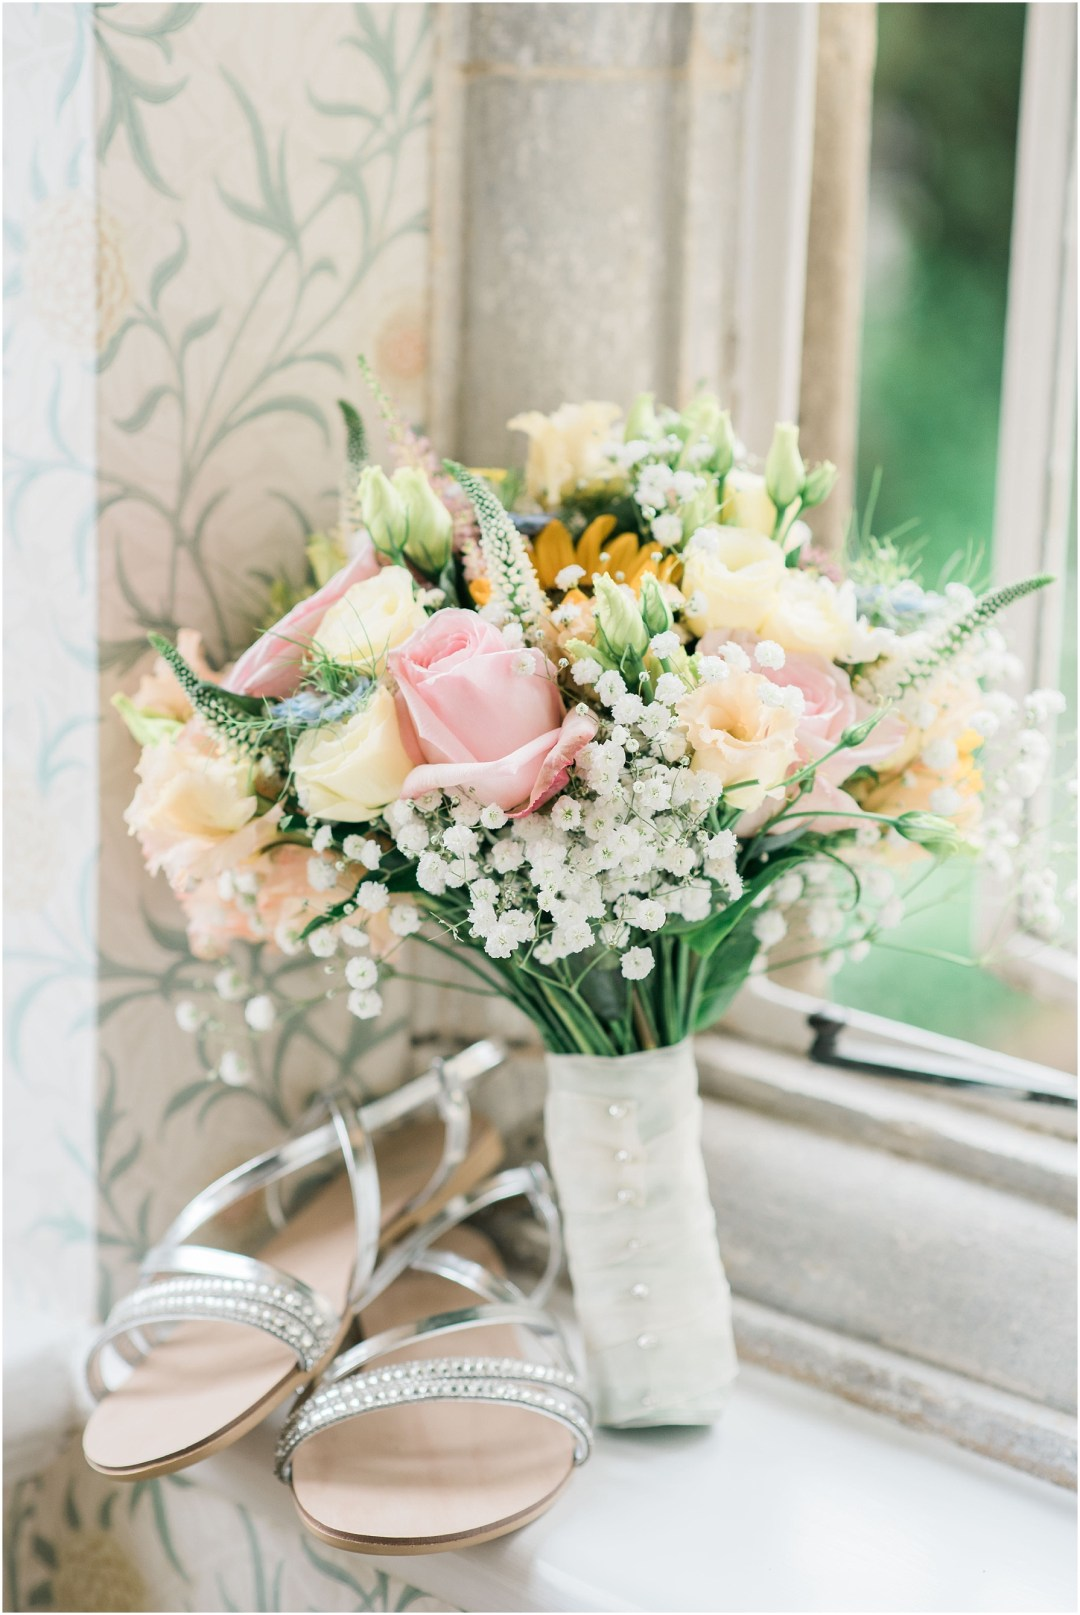 pastel bouquet and bridal shoes on a window sill